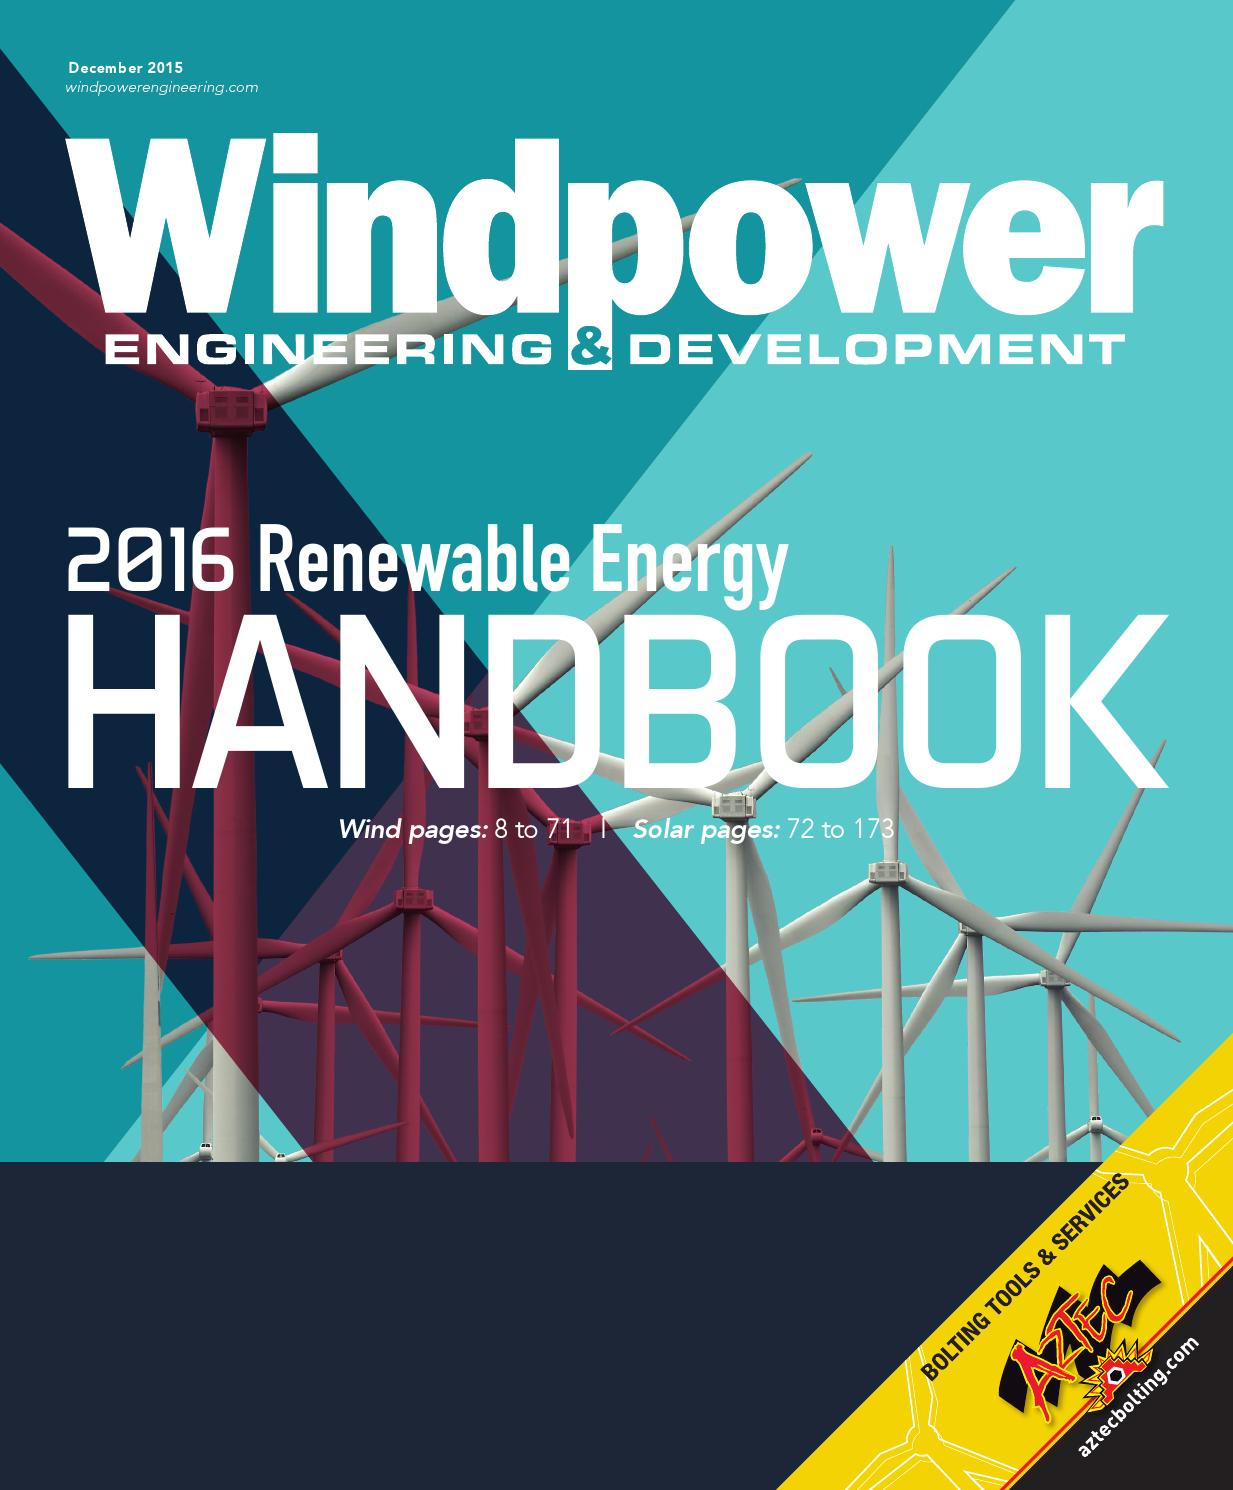 2016 Renewable Energy Handbook Wind By Wtwh Media Llc Issuu Transmission Module Likewise 120vac To 12vdc Power Supply Schematic